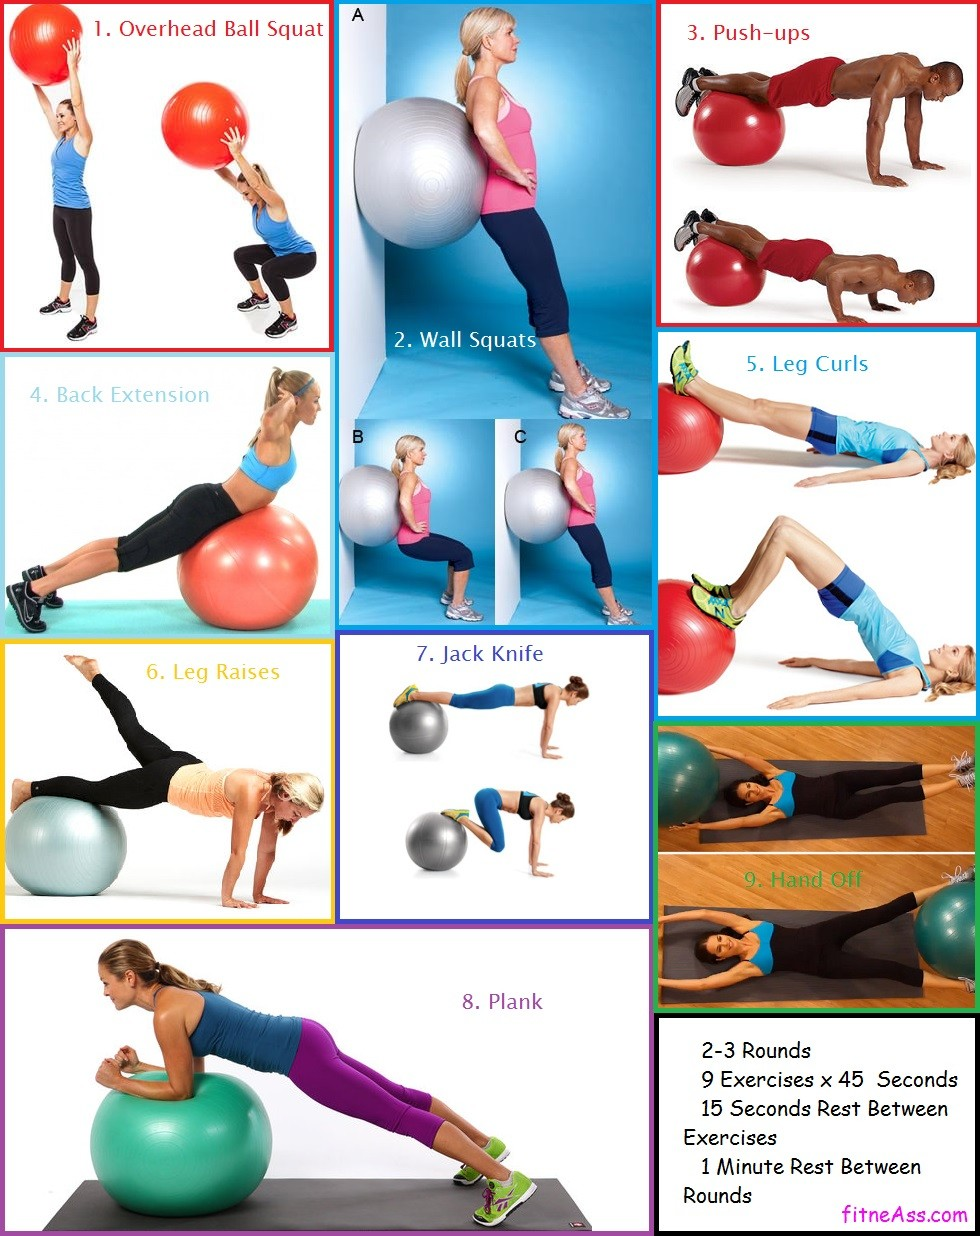 fitneAss | 20 Minute Beginner Stability Swiss Ball Workout